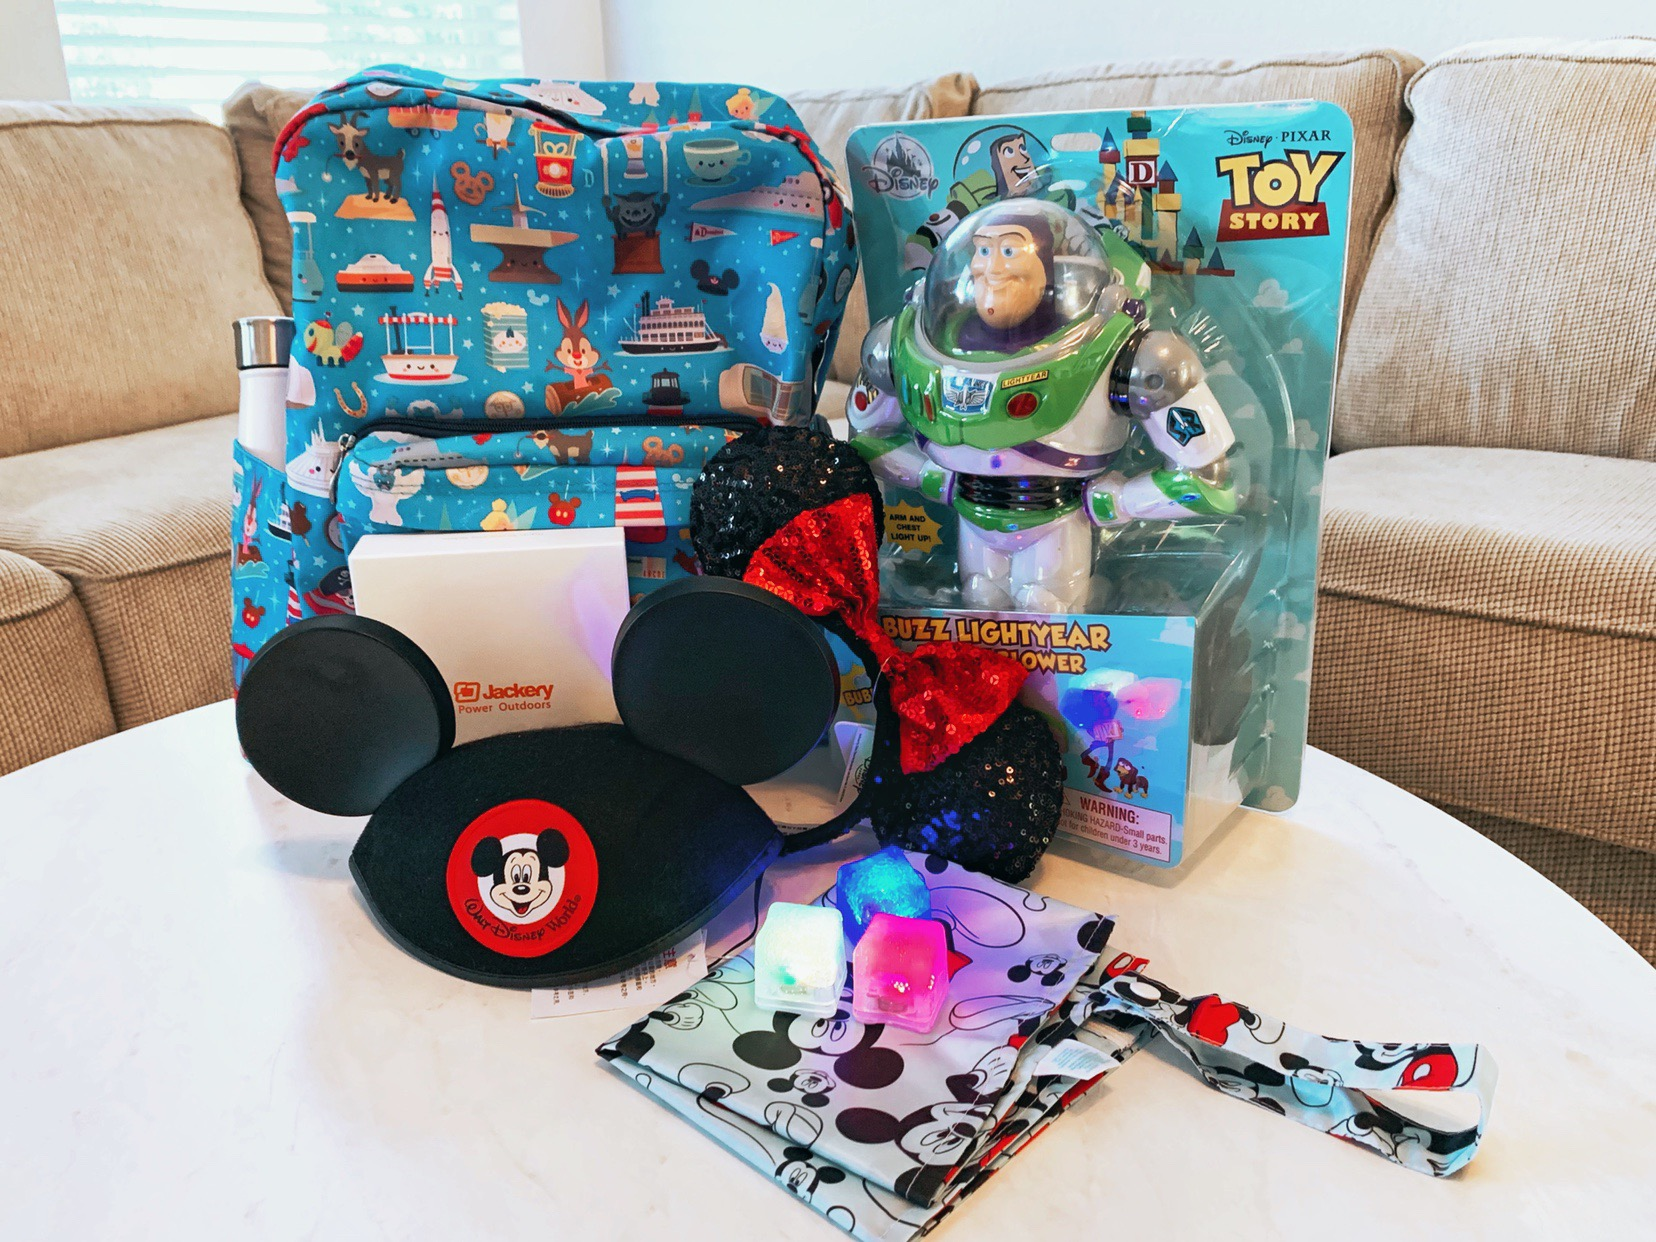 Giving away stuff you need for a magical trip to Walt Disney World!